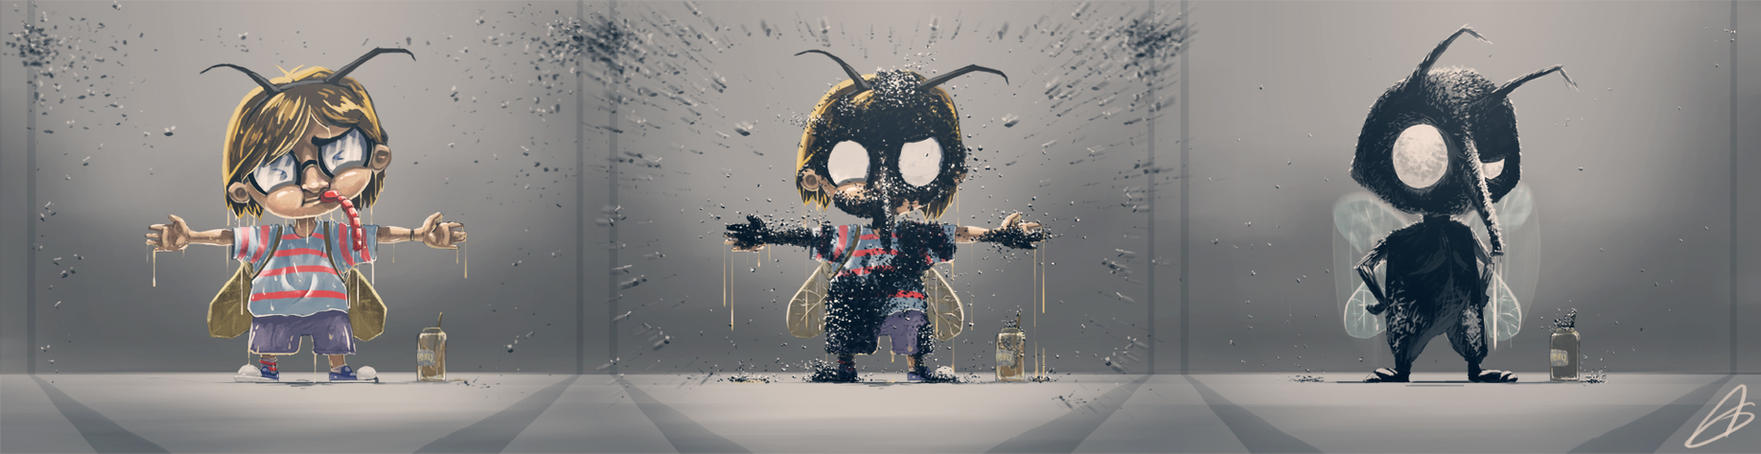 The Transformation challenge - The Fly-Kid by Zeich